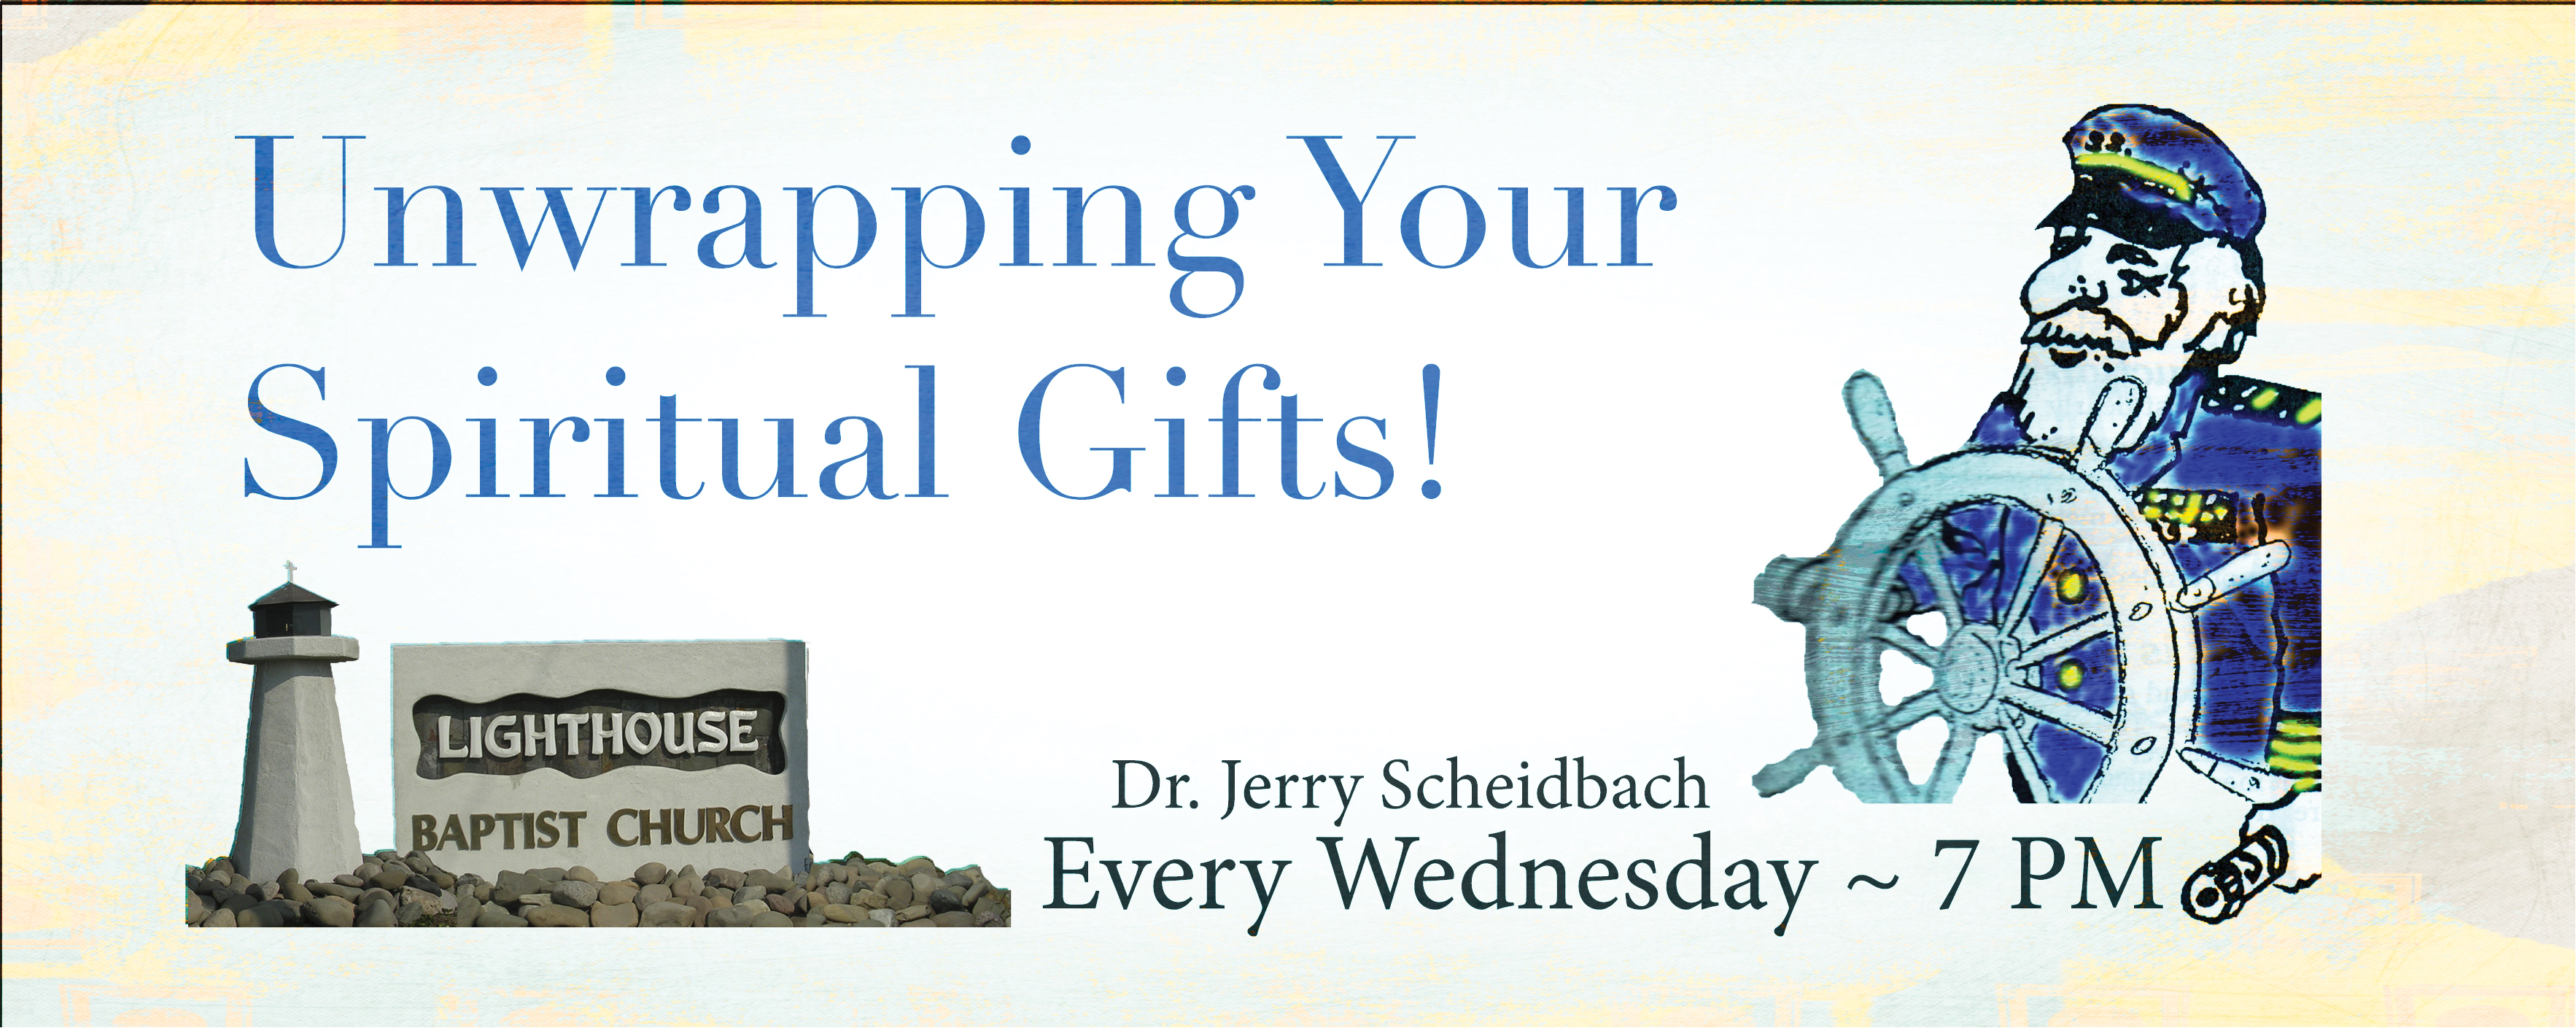 Spiritual Gifts: Unwrapping Your Gifts | Lighthouse Baptist Church